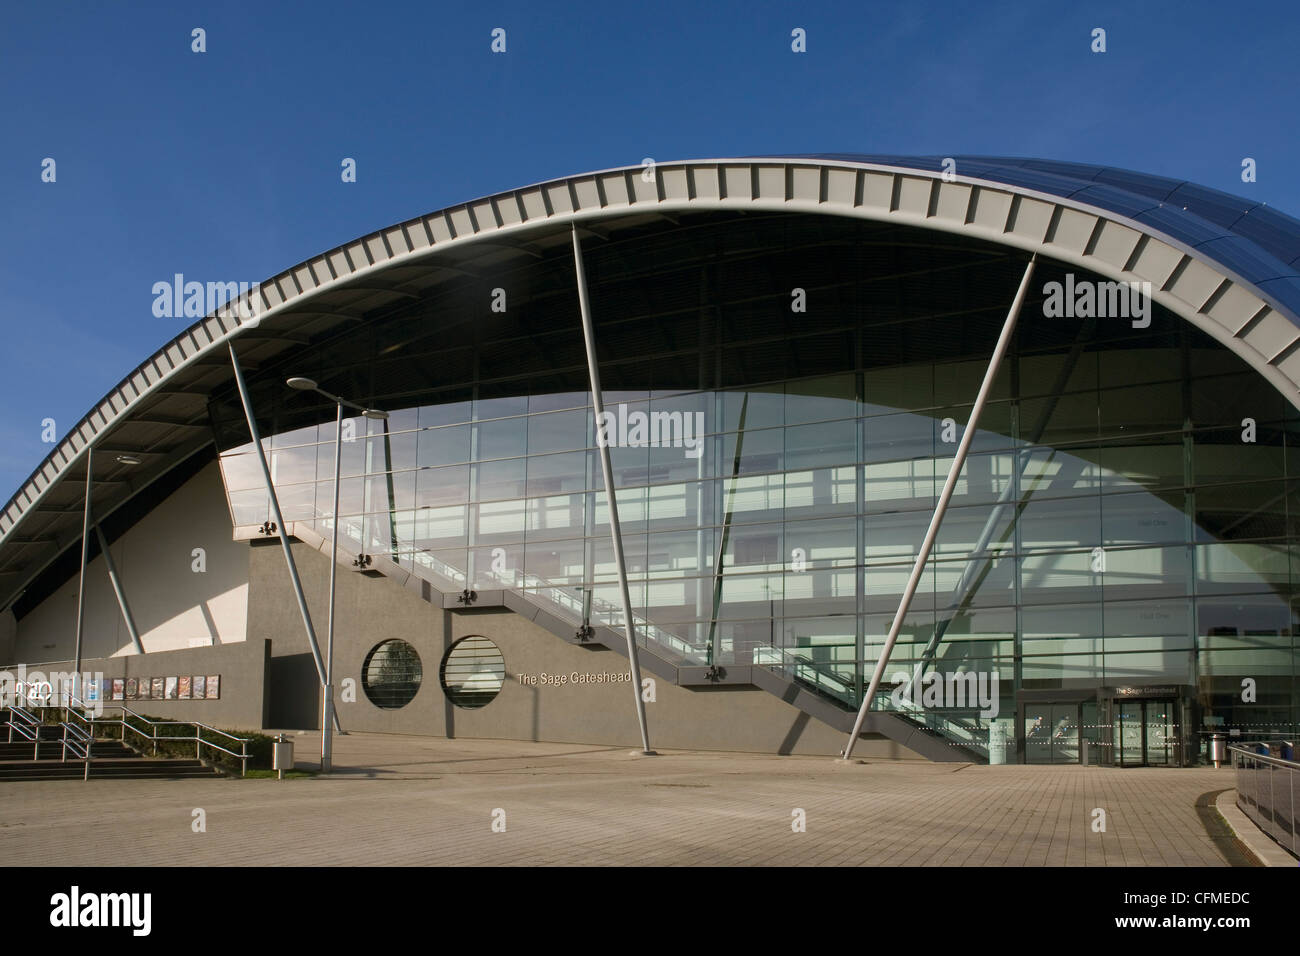 The Sage Auditorium, Gateshead, Tyne and Wear, England, United Kingdom, Europe - Stock Image